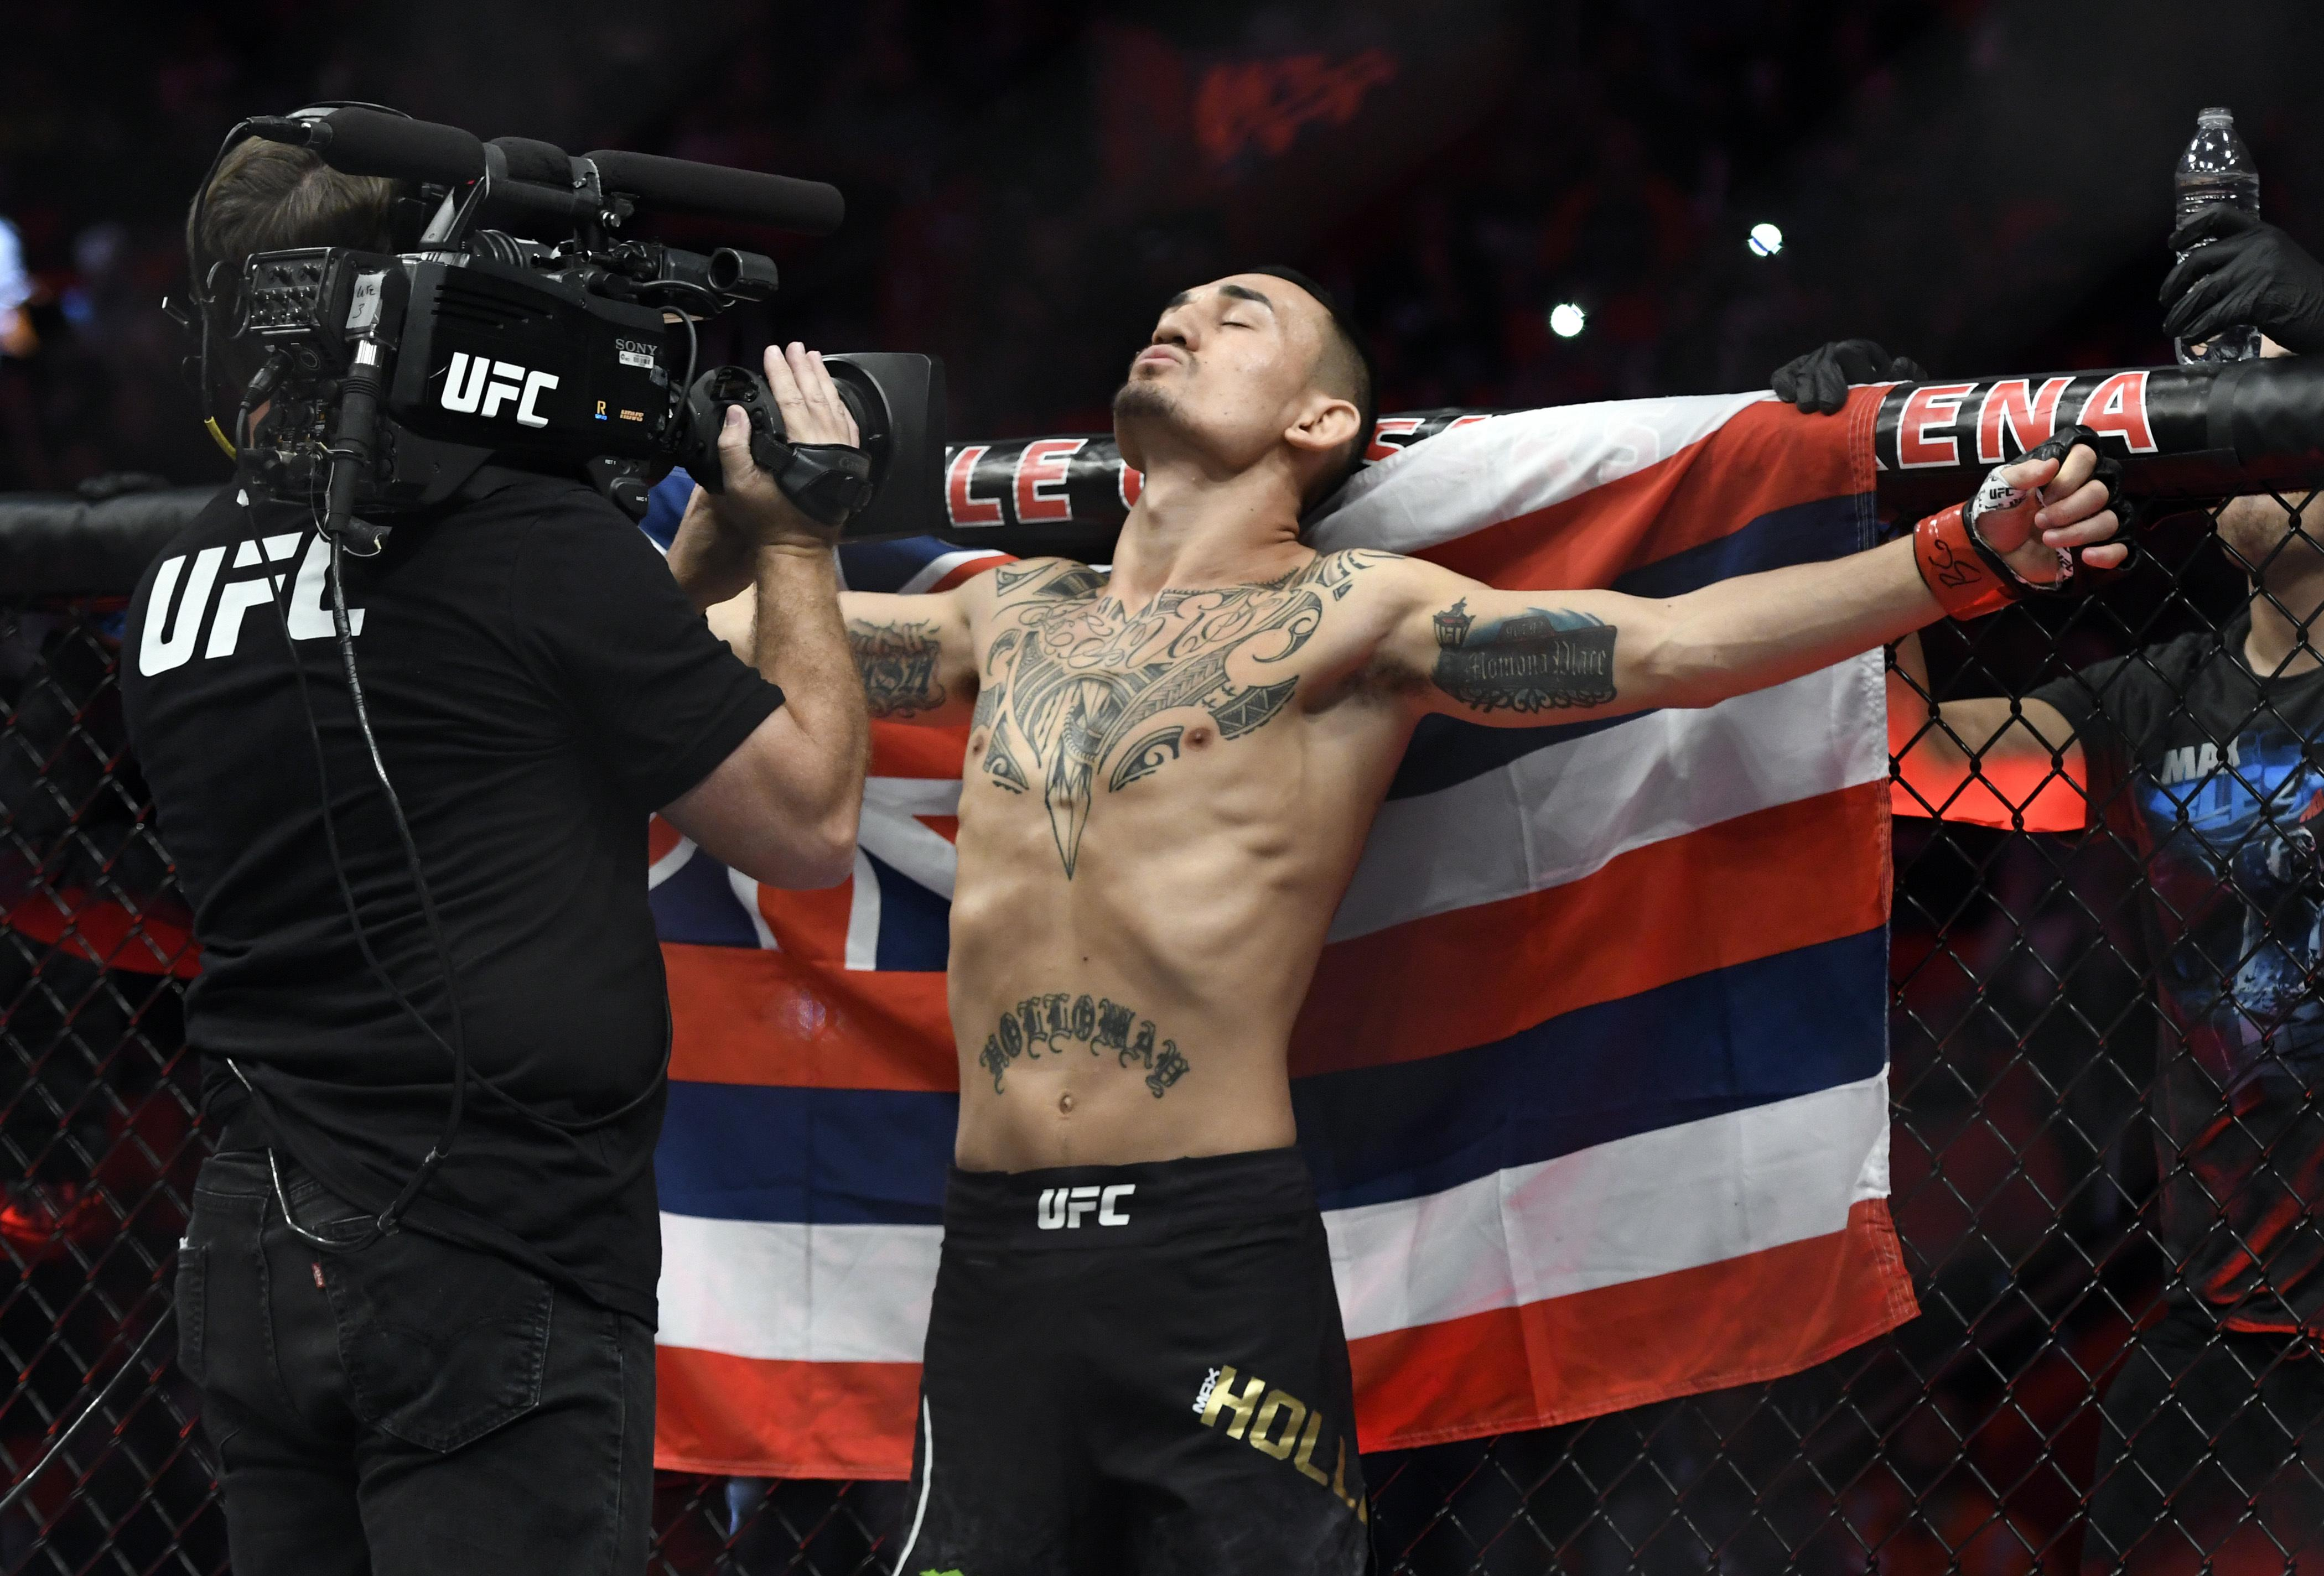 Max Holloway agreed to step up a weight class in order to fight Russian Khabib Nurmagomedov but was pulled